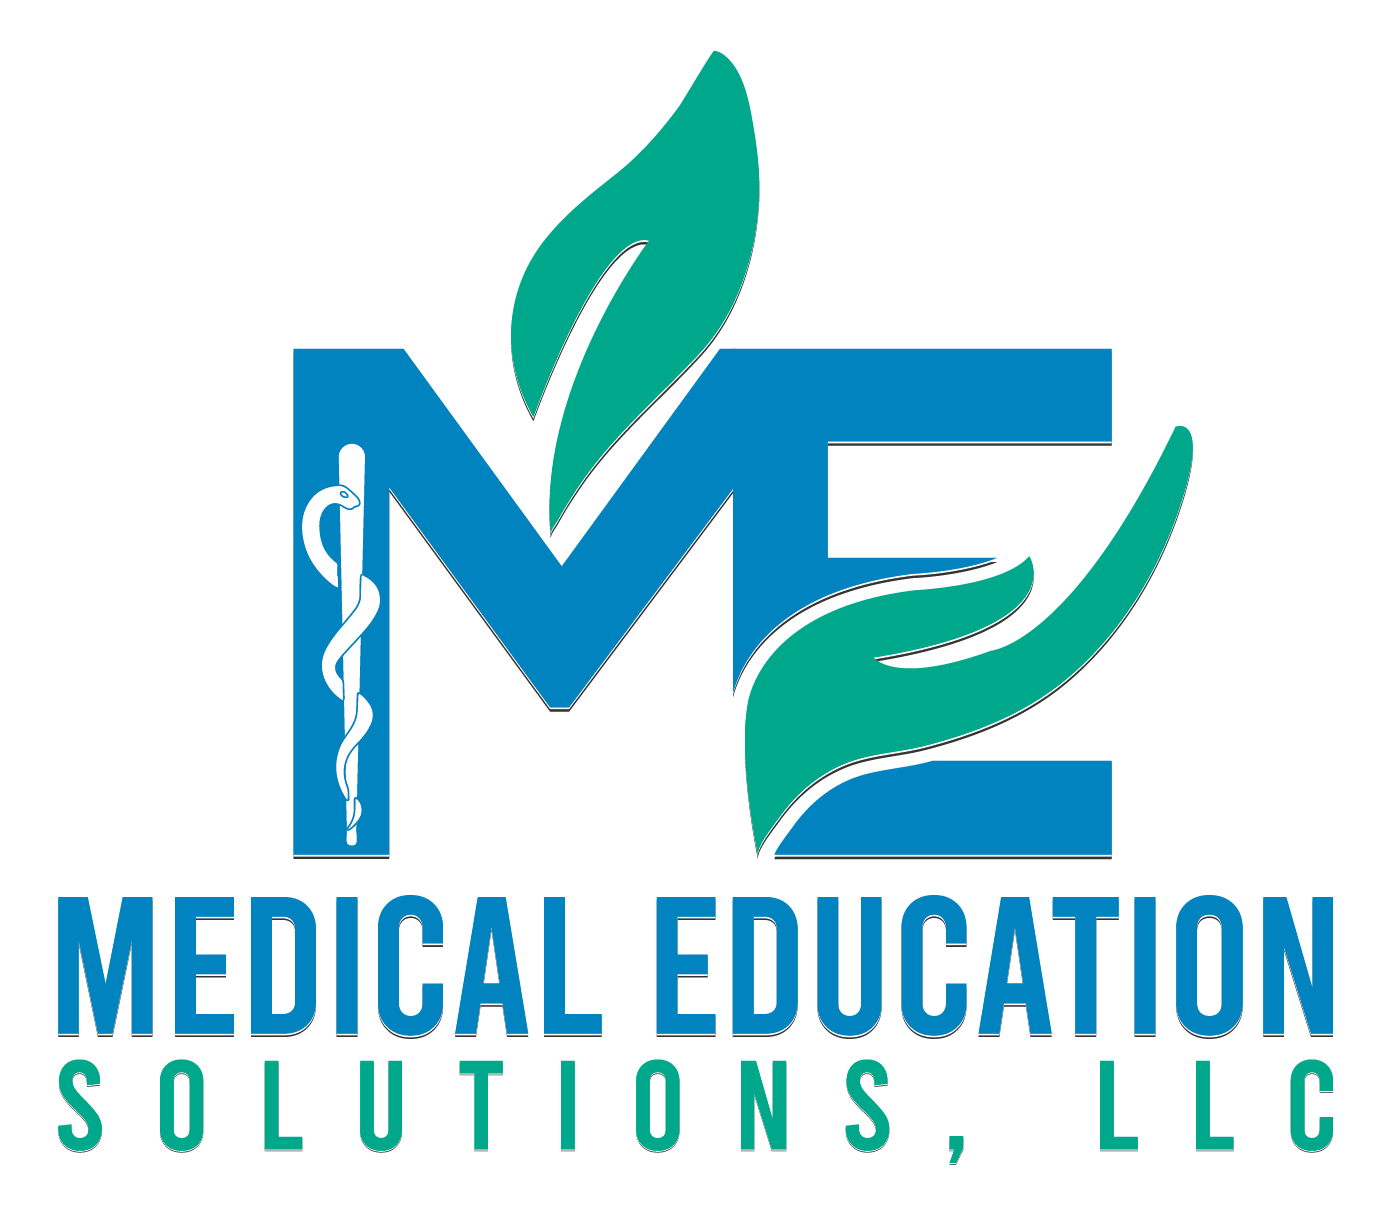 Medical Education Solutions